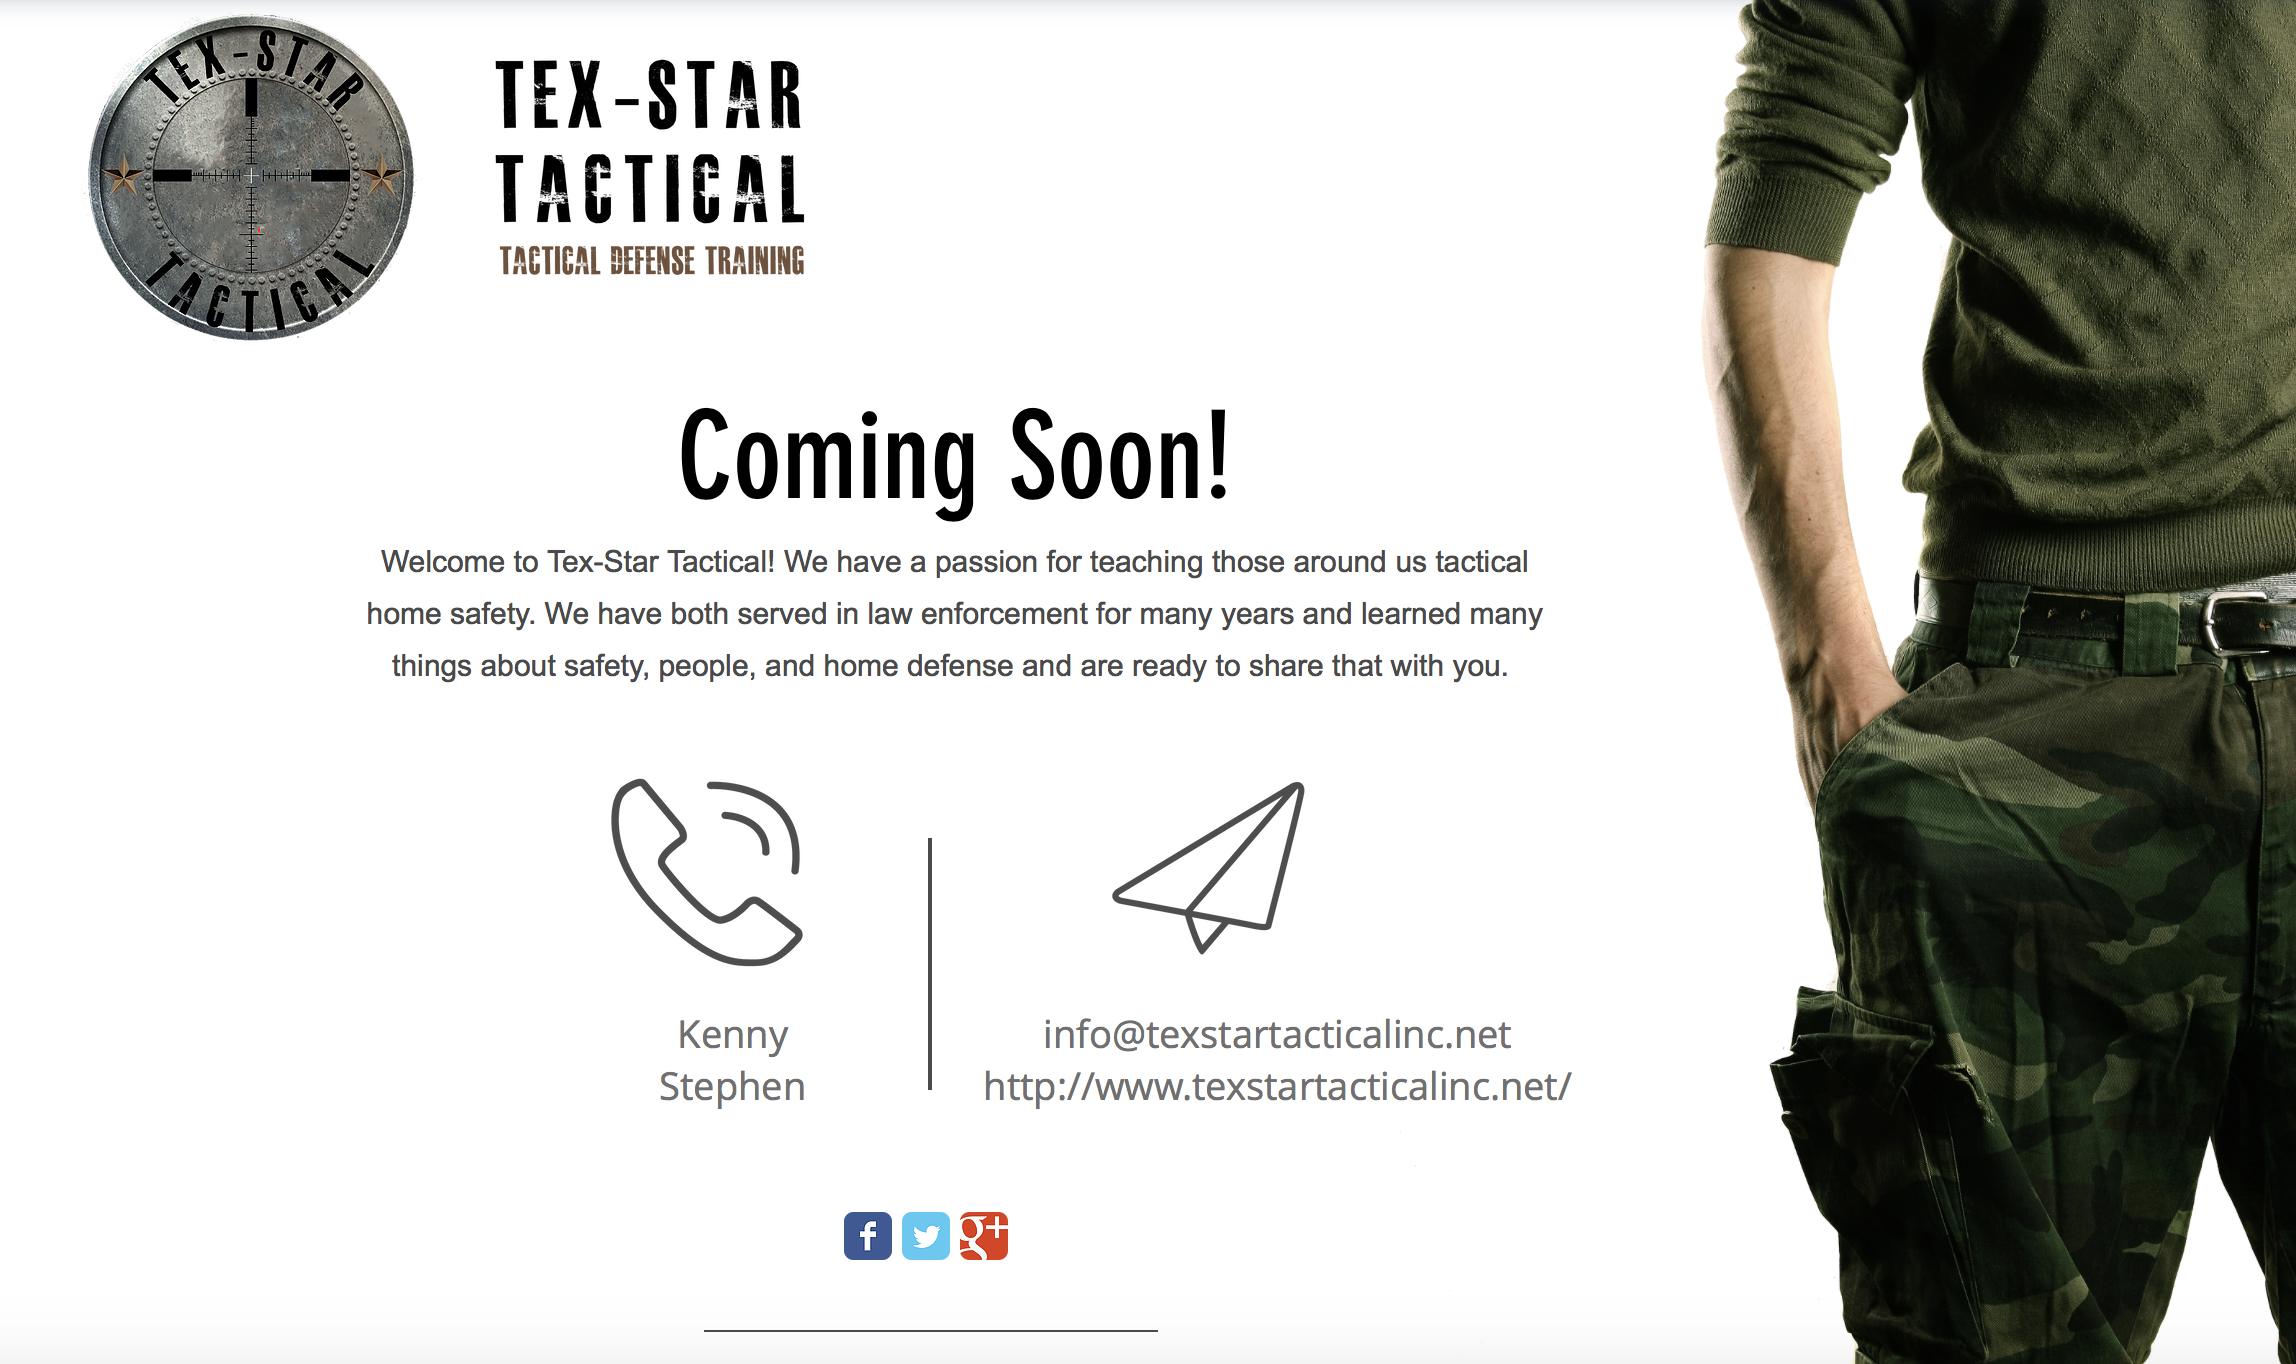 Tex-Star Tactical